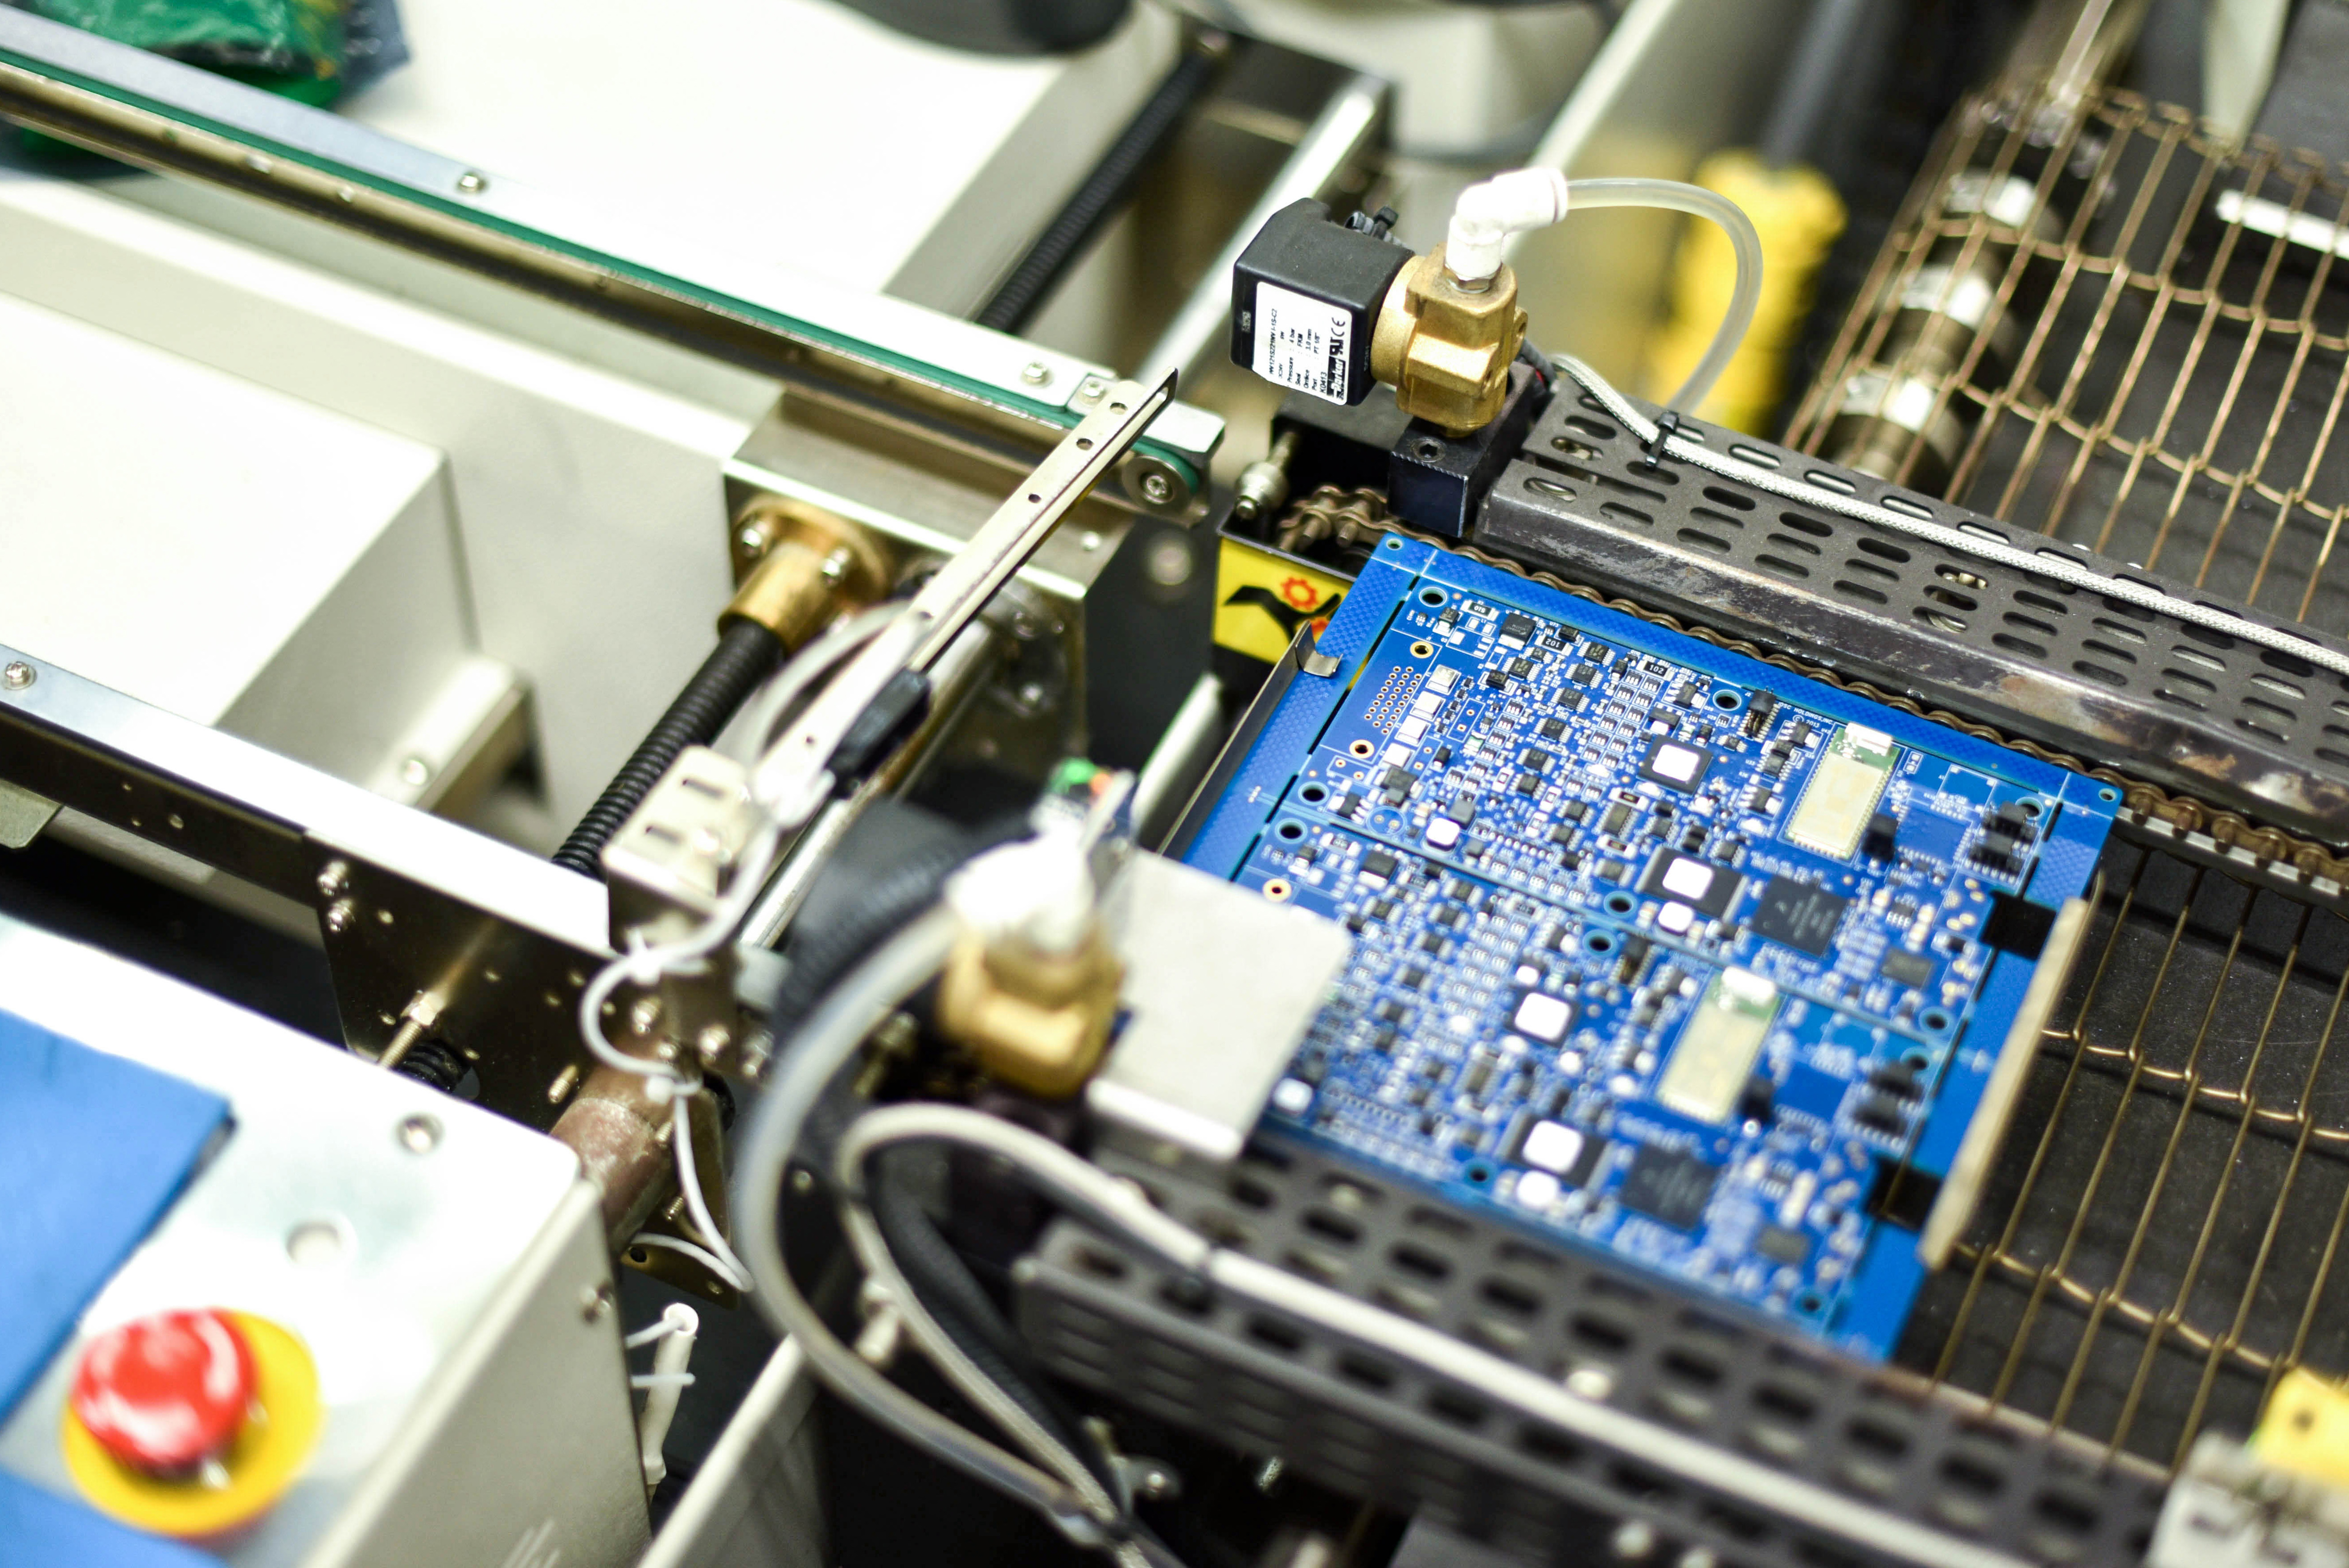 The Benefits Of Working With A Contract Manufacturer Saline Lectronics Specializes In Pcb Manufacturing Smt Circuit Schematic Diagram Many Your Clients May Need High Demand Products Within Tight Time Limit Hire An Outside Cm To Expedite Electronics Instead